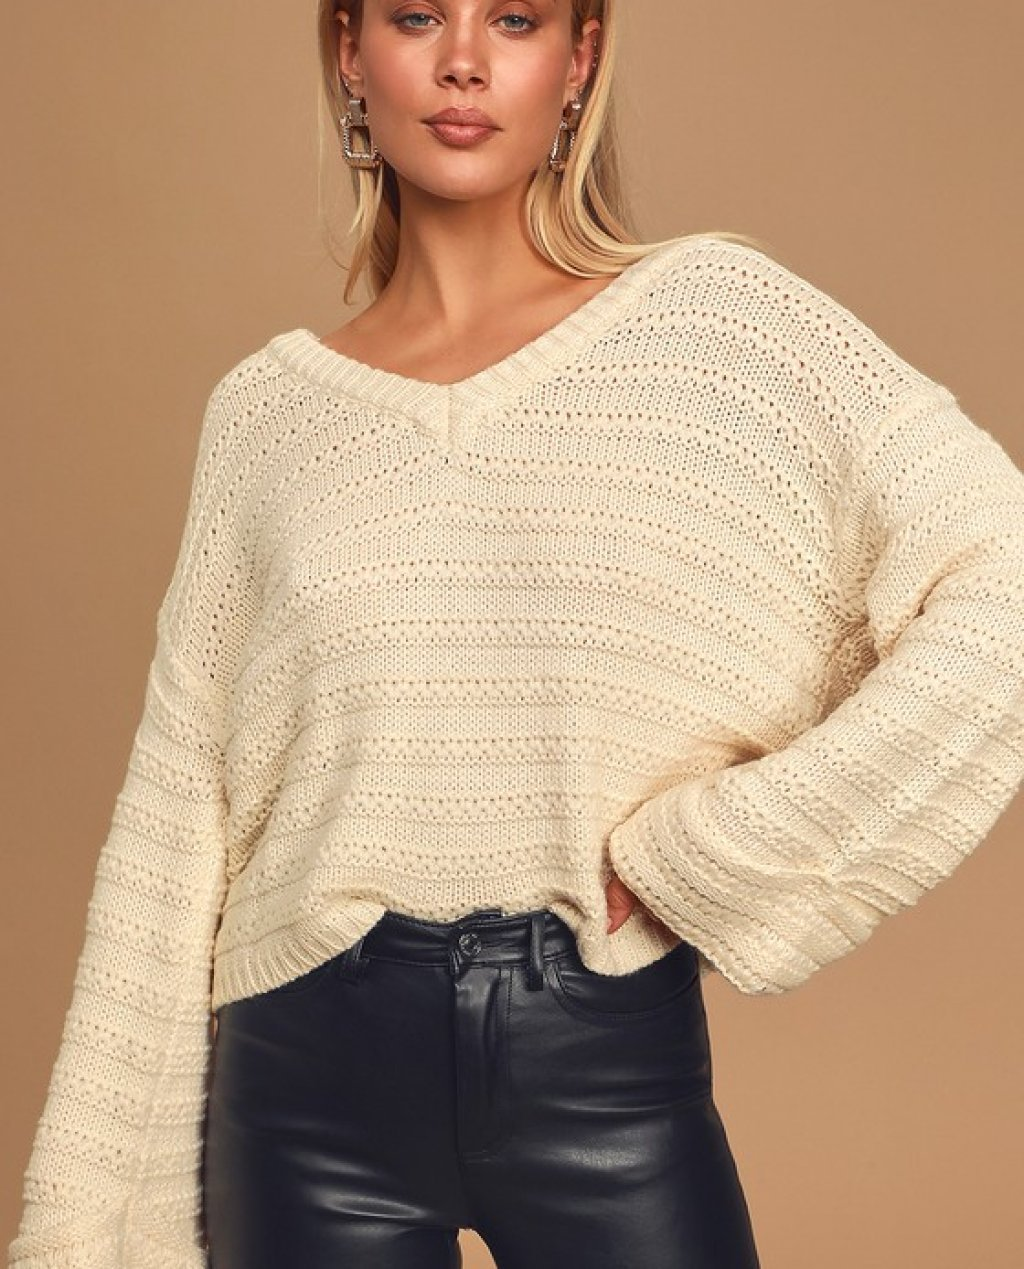 See Me Again Cream Ribbed Knit Sweater